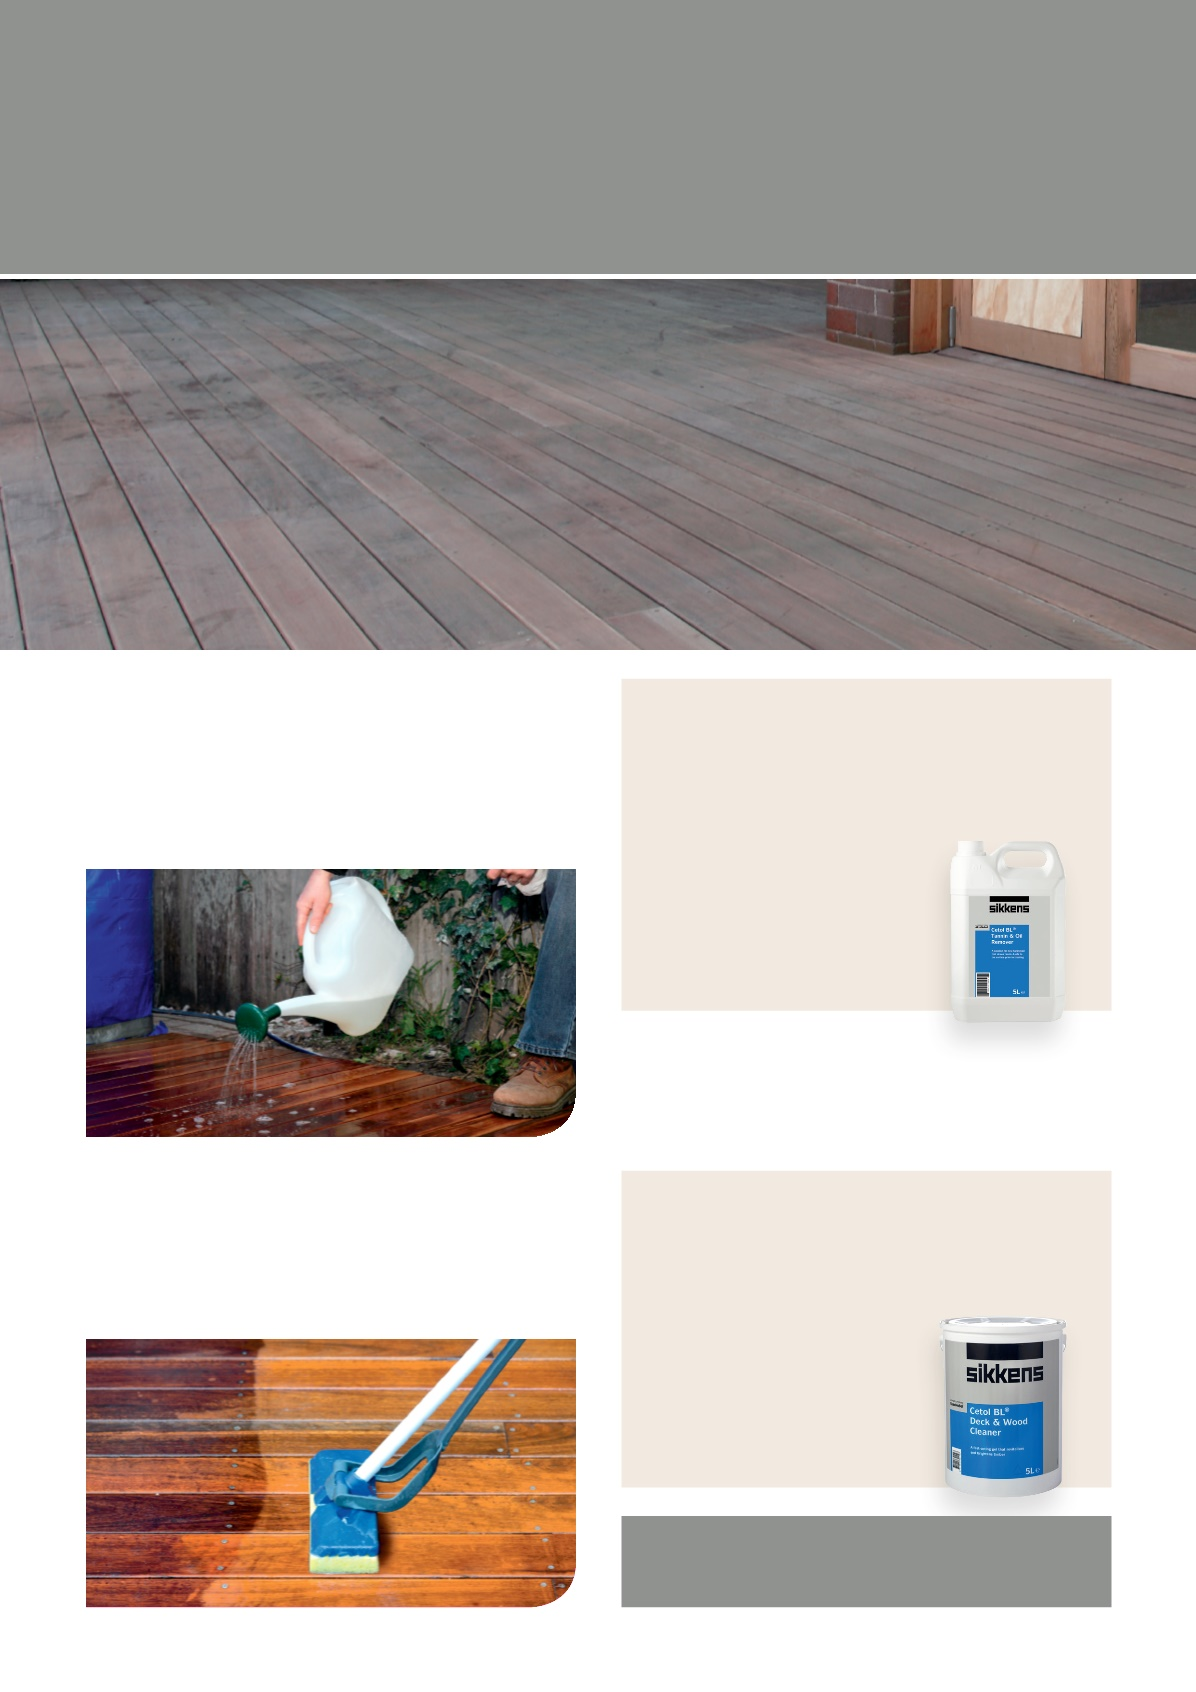 Sikkens Timber Care